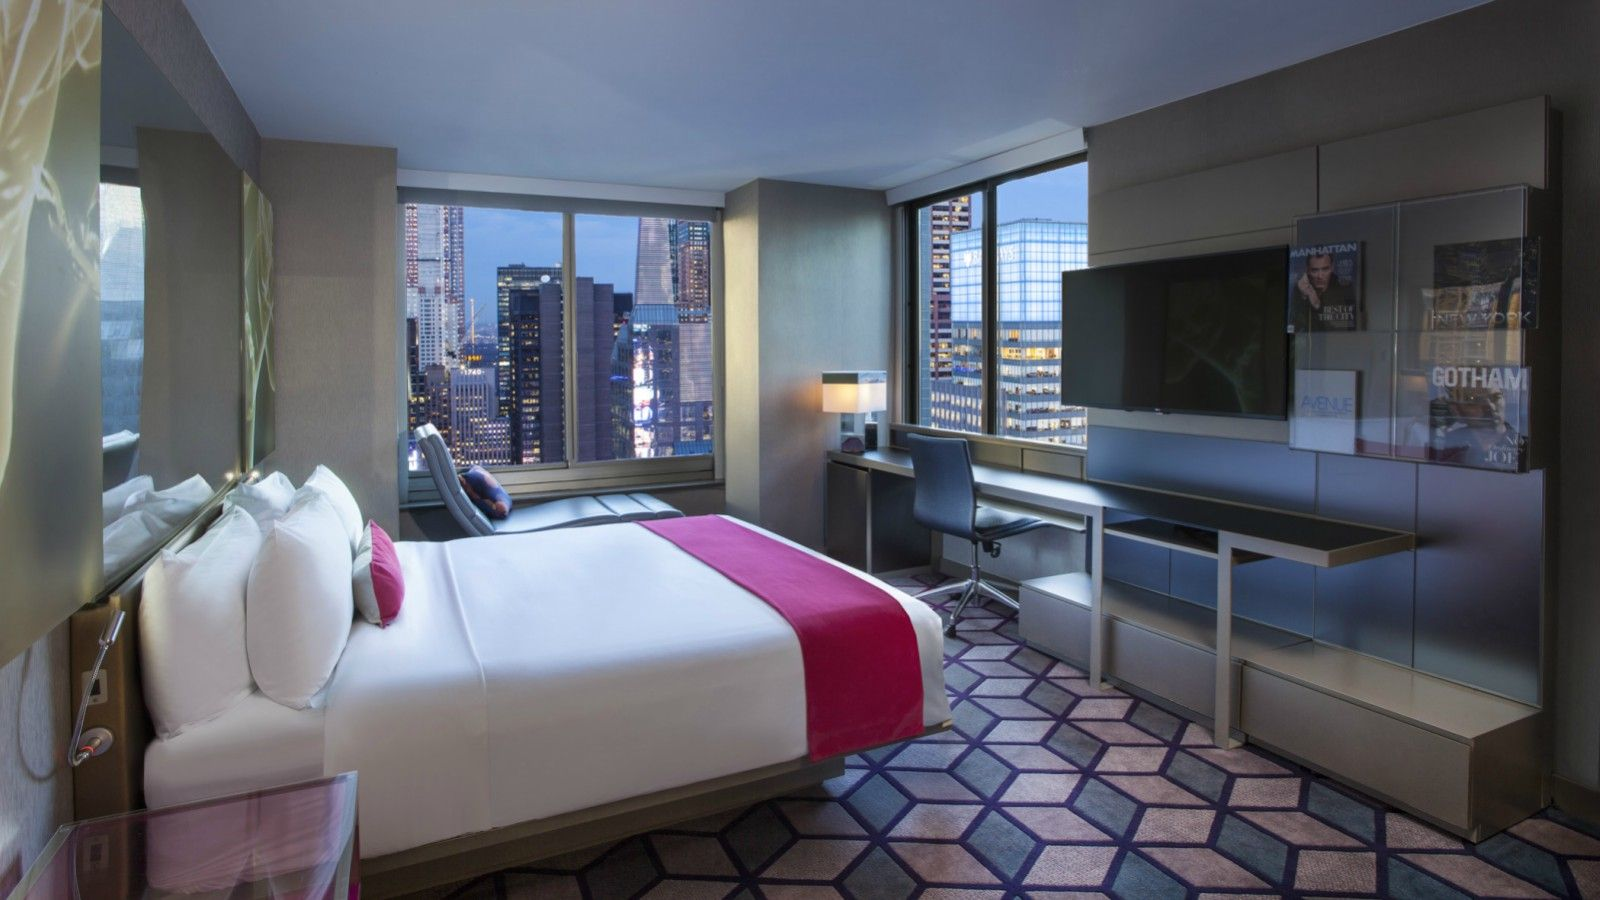 Times Square Accommodations - Cool Corner Room - Times Square View